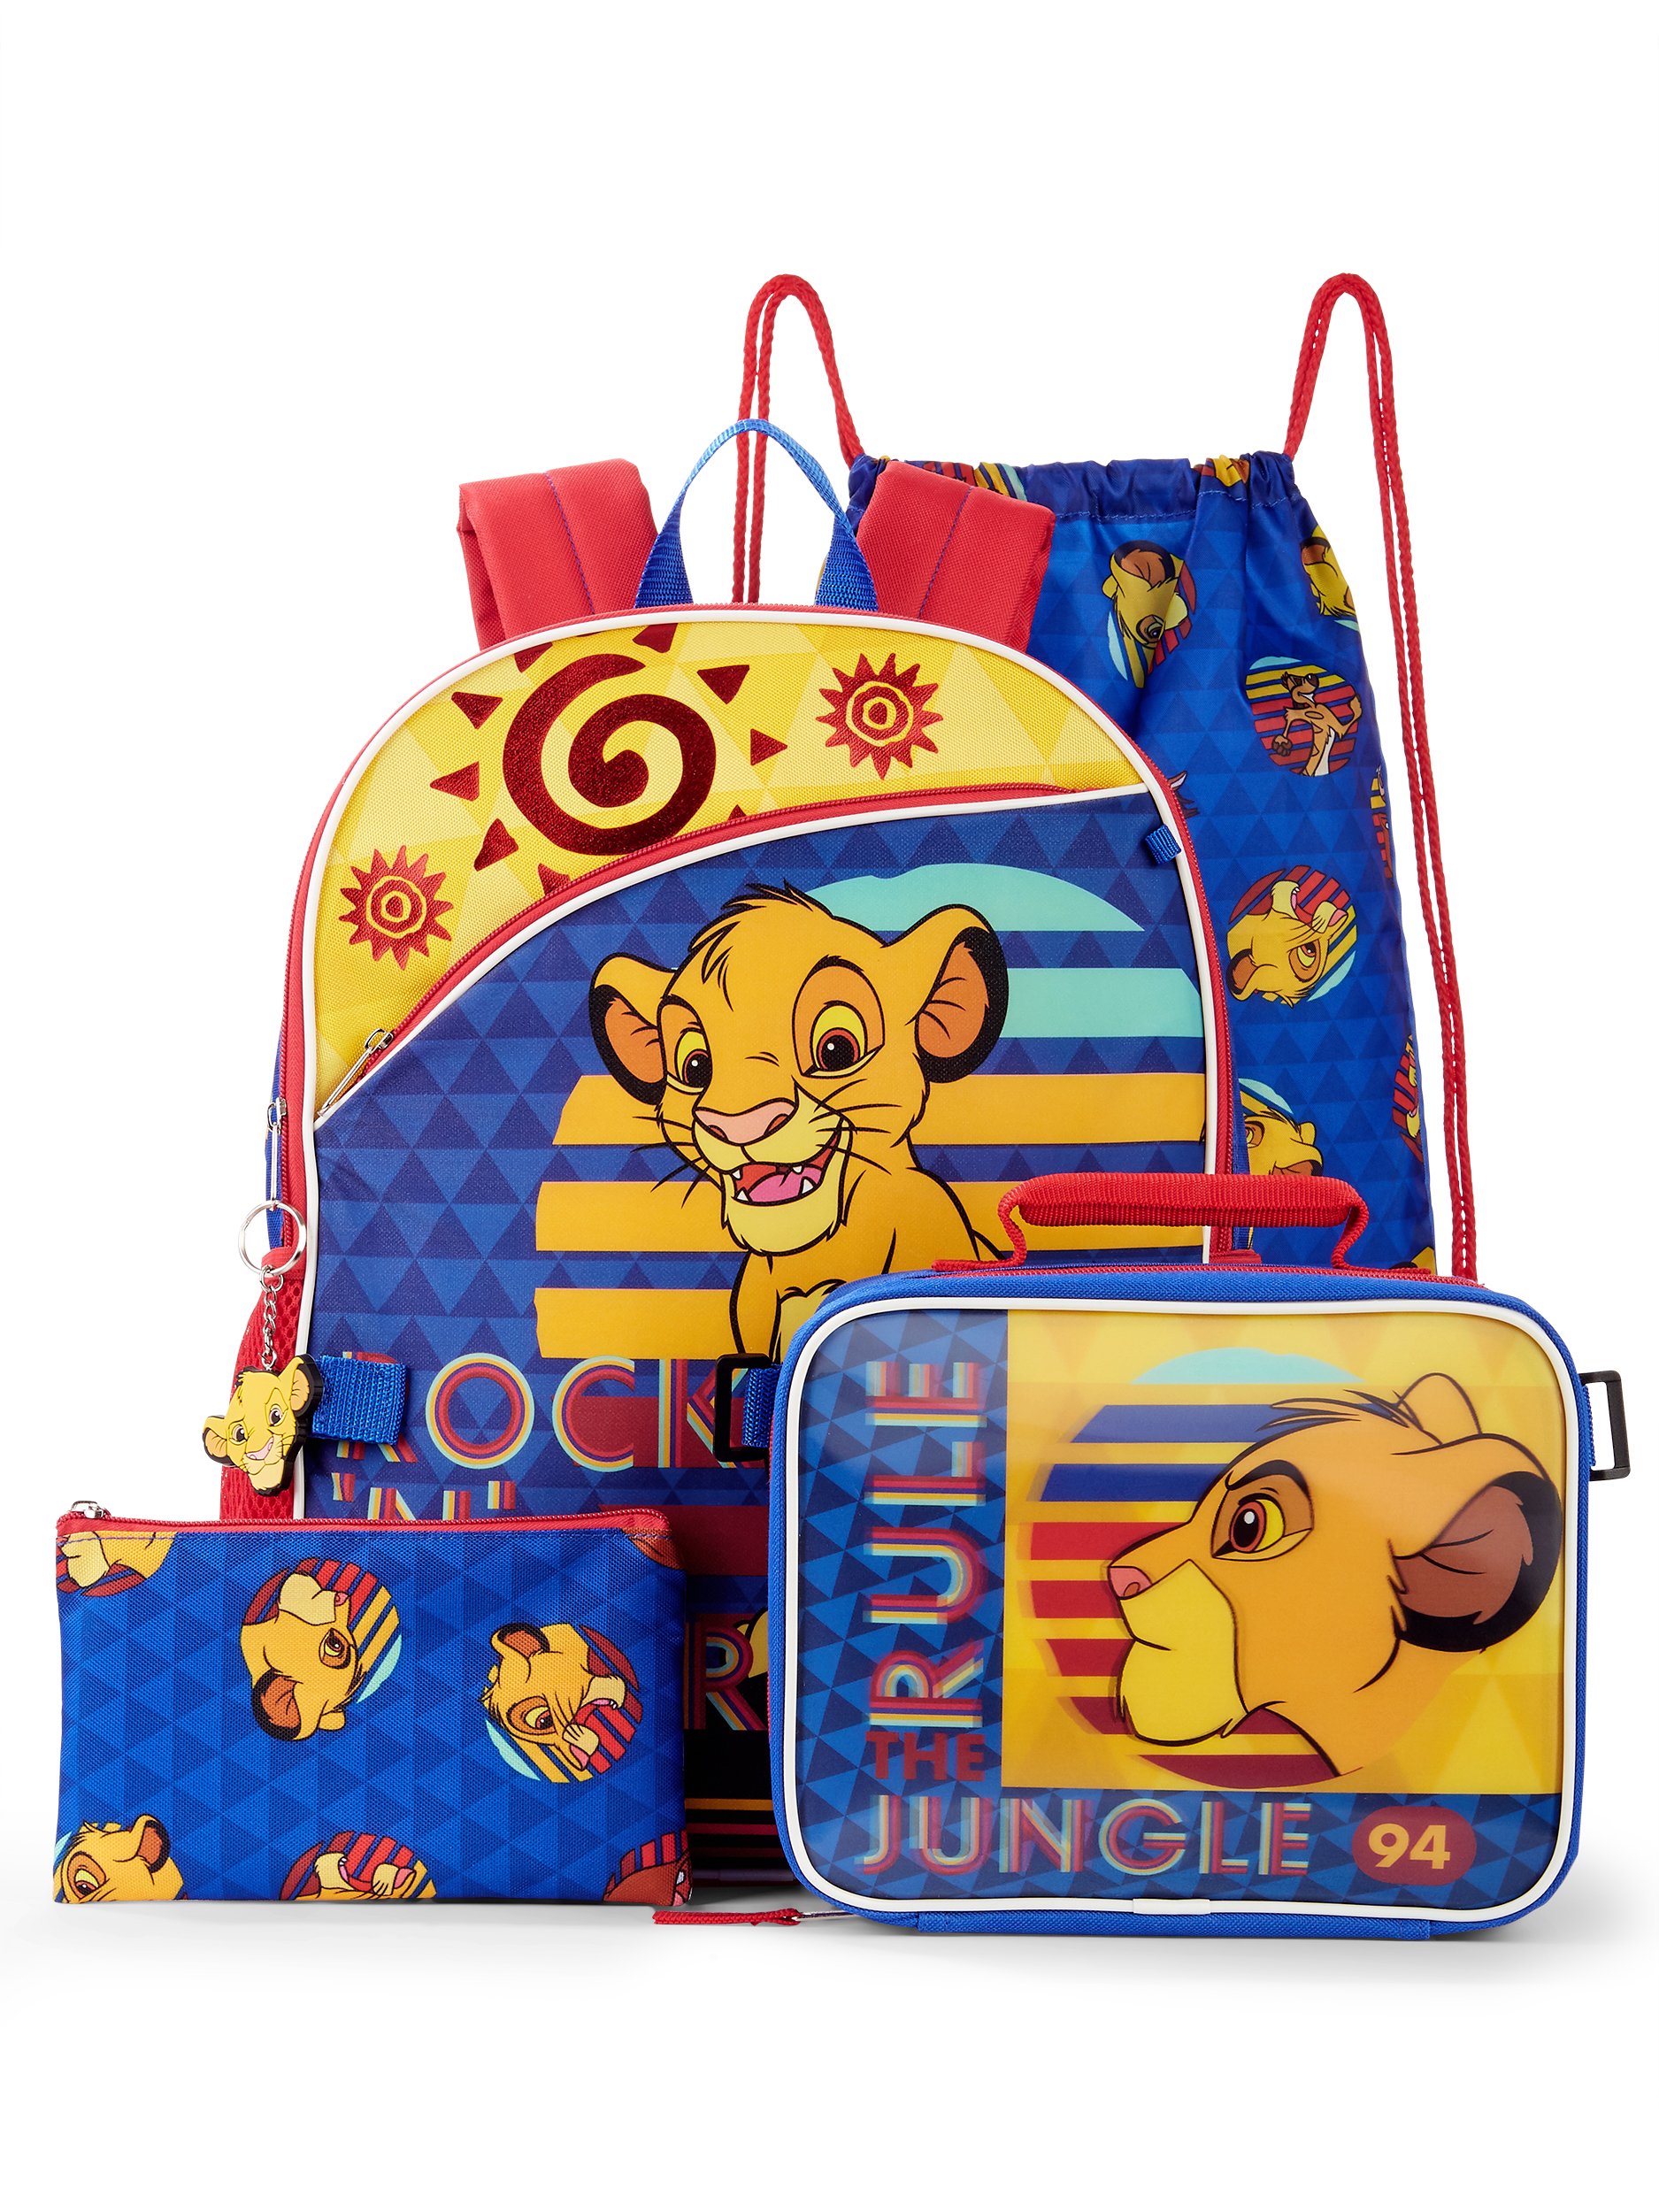 Girls Backpacks - Walmart.com